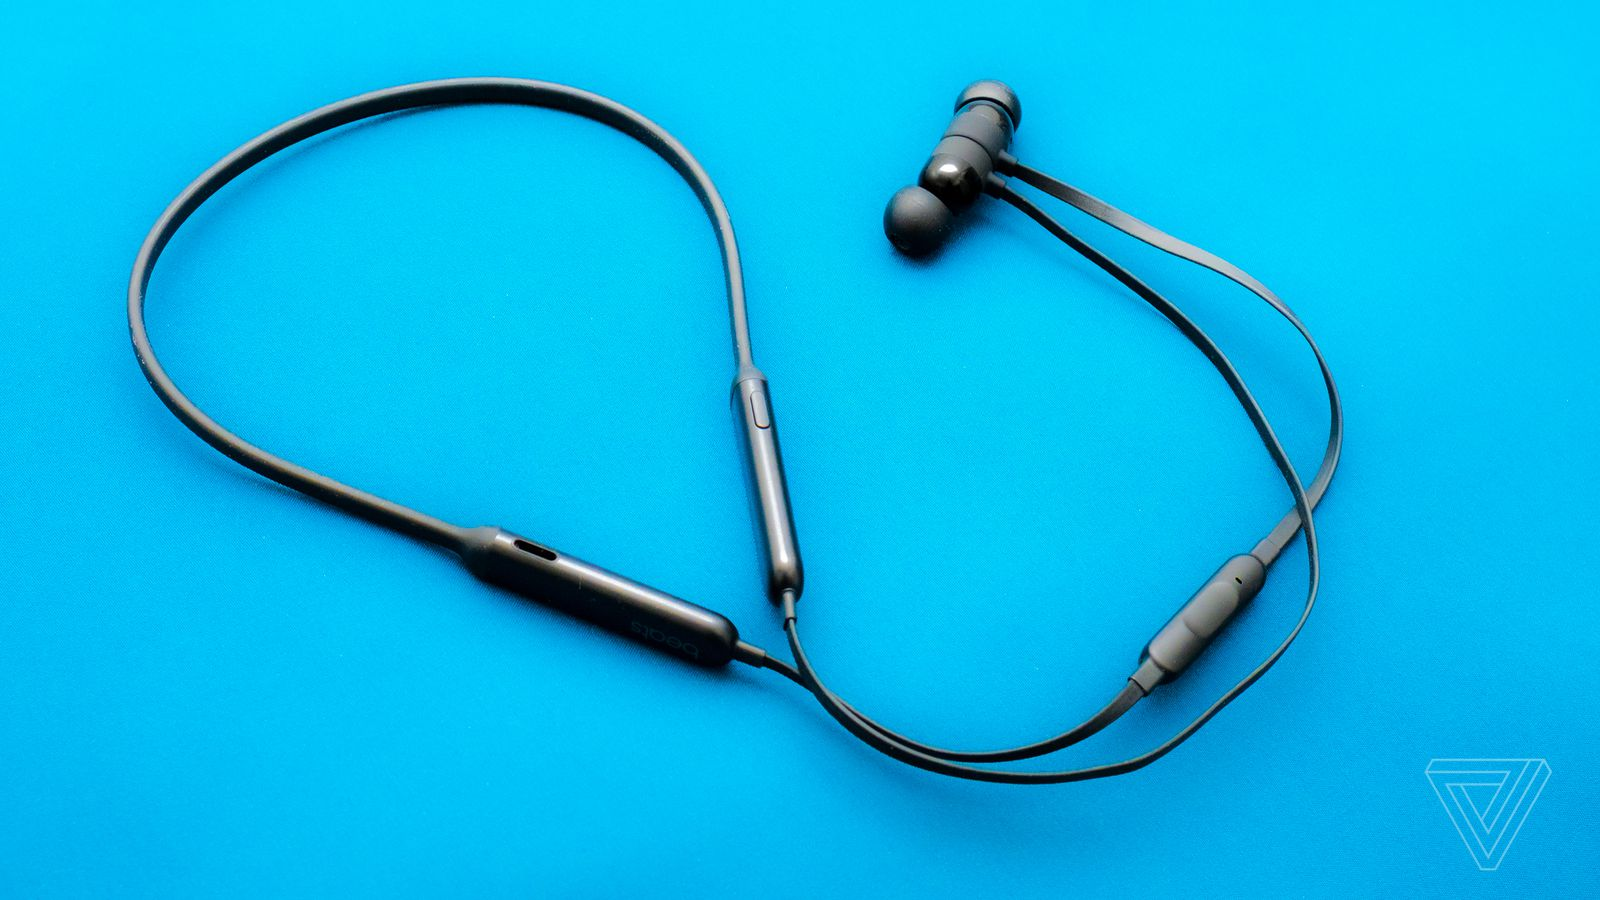 Bose Stereo >> Beats X review: Apple's neckbuds for the everyday - The Verge